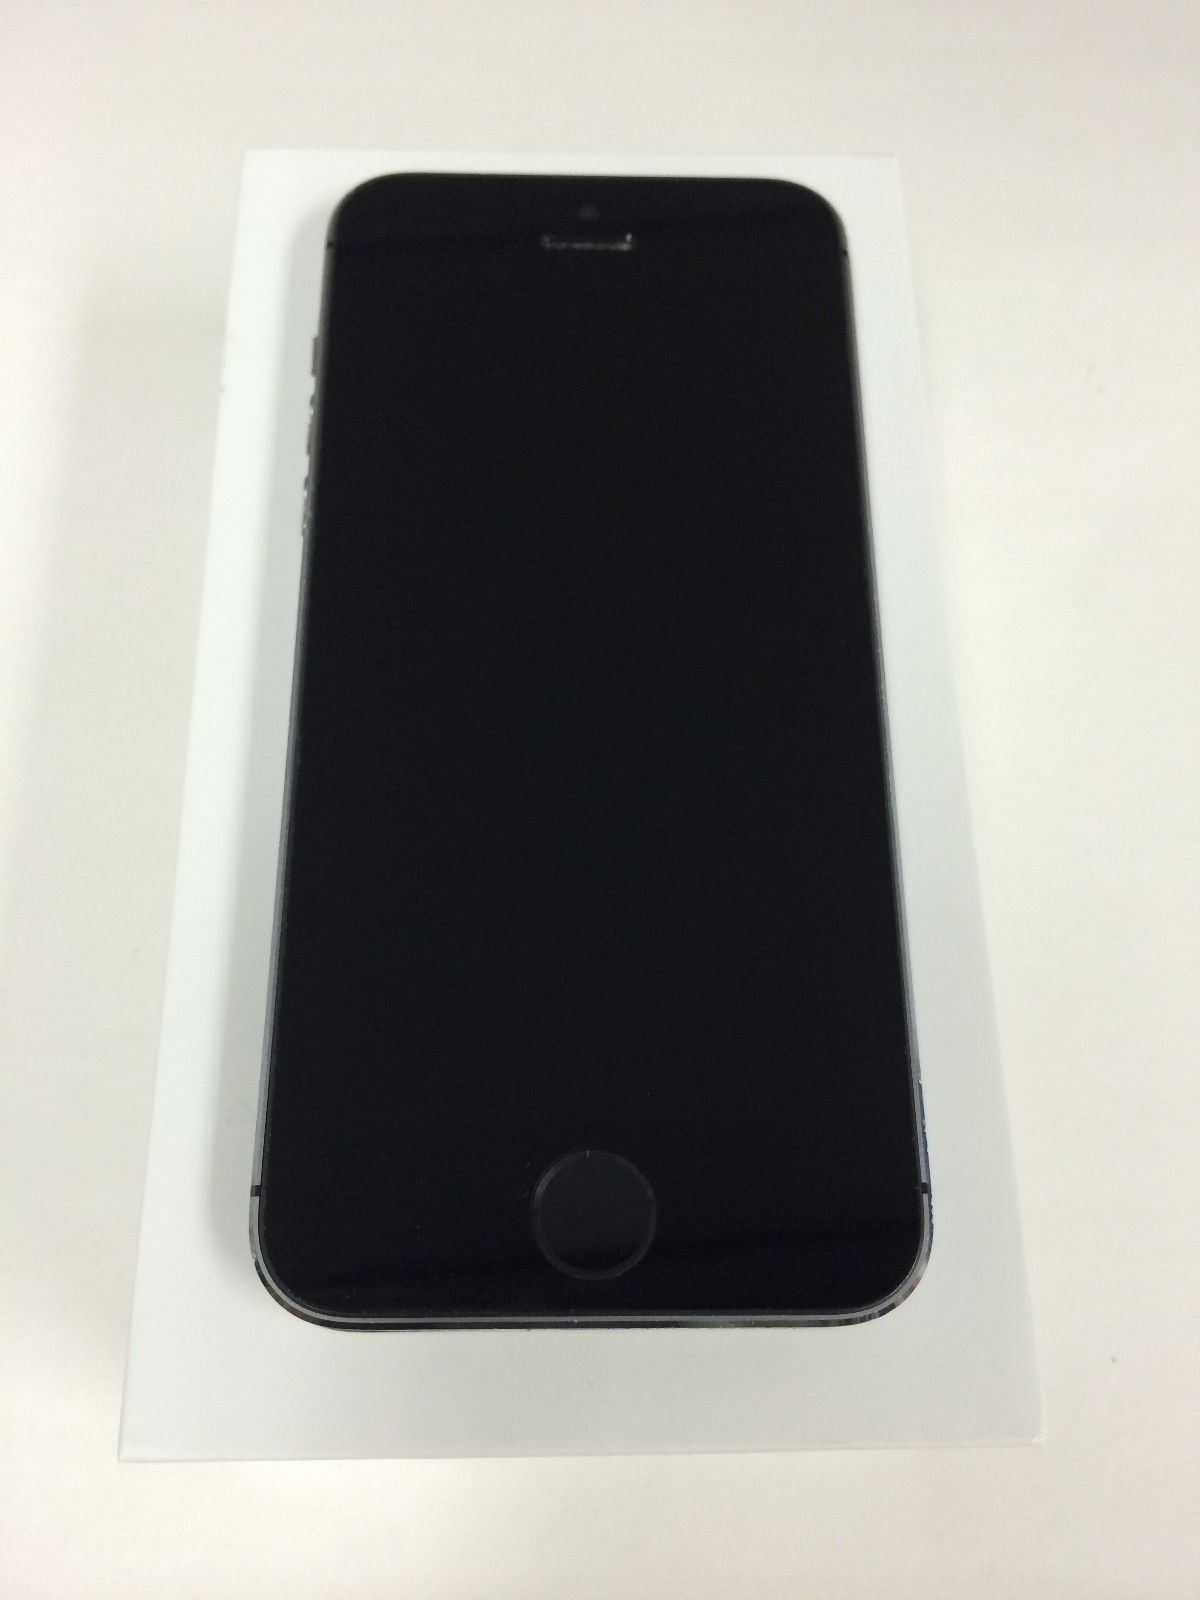 Apple Iphone 5s 32gb Space Gray T Mobile Good Warranty Se Grey Ebay